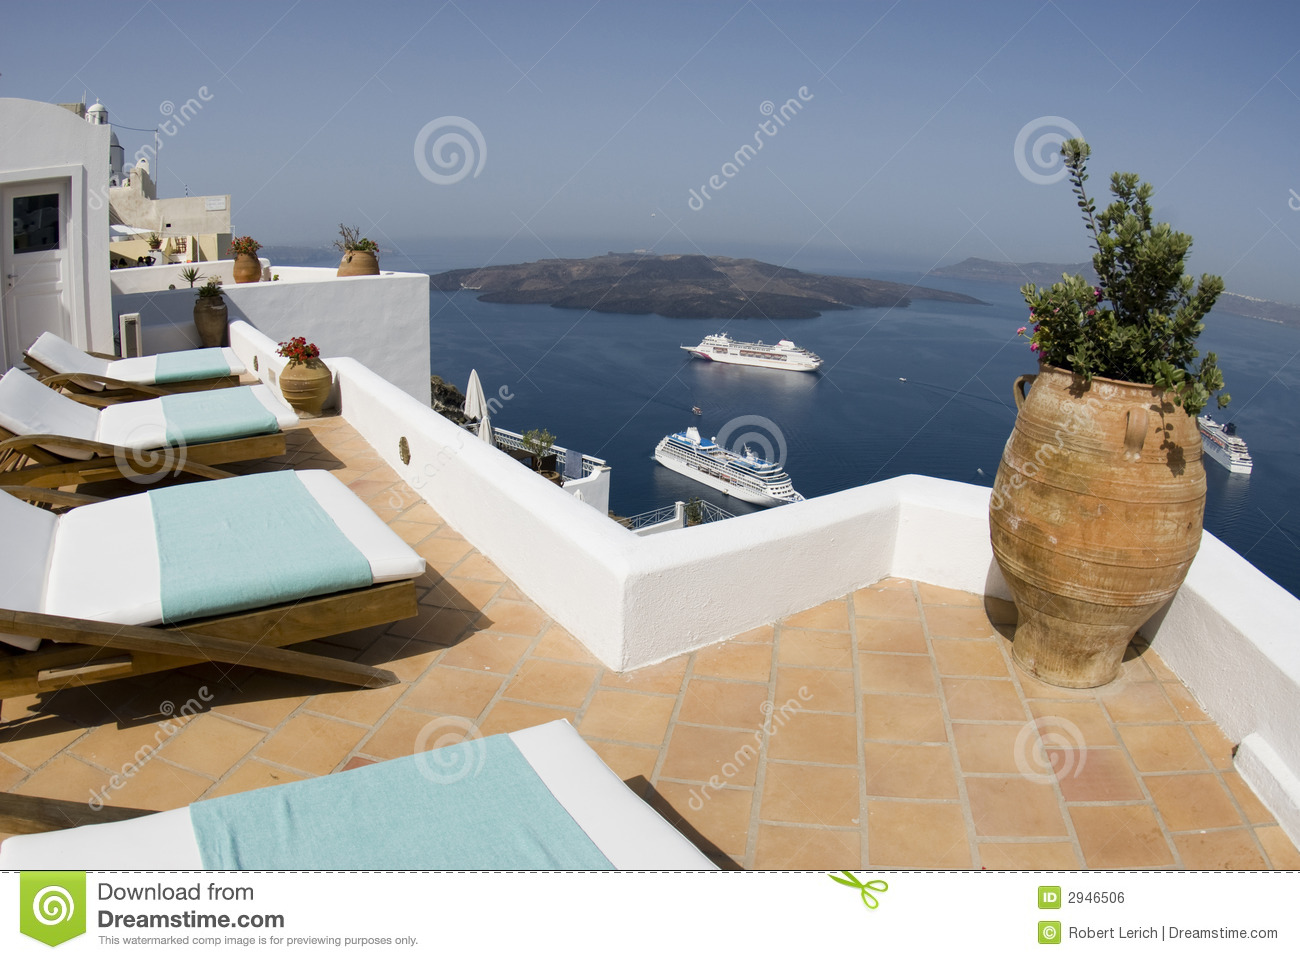 - villa-view-island-harbor-2946506